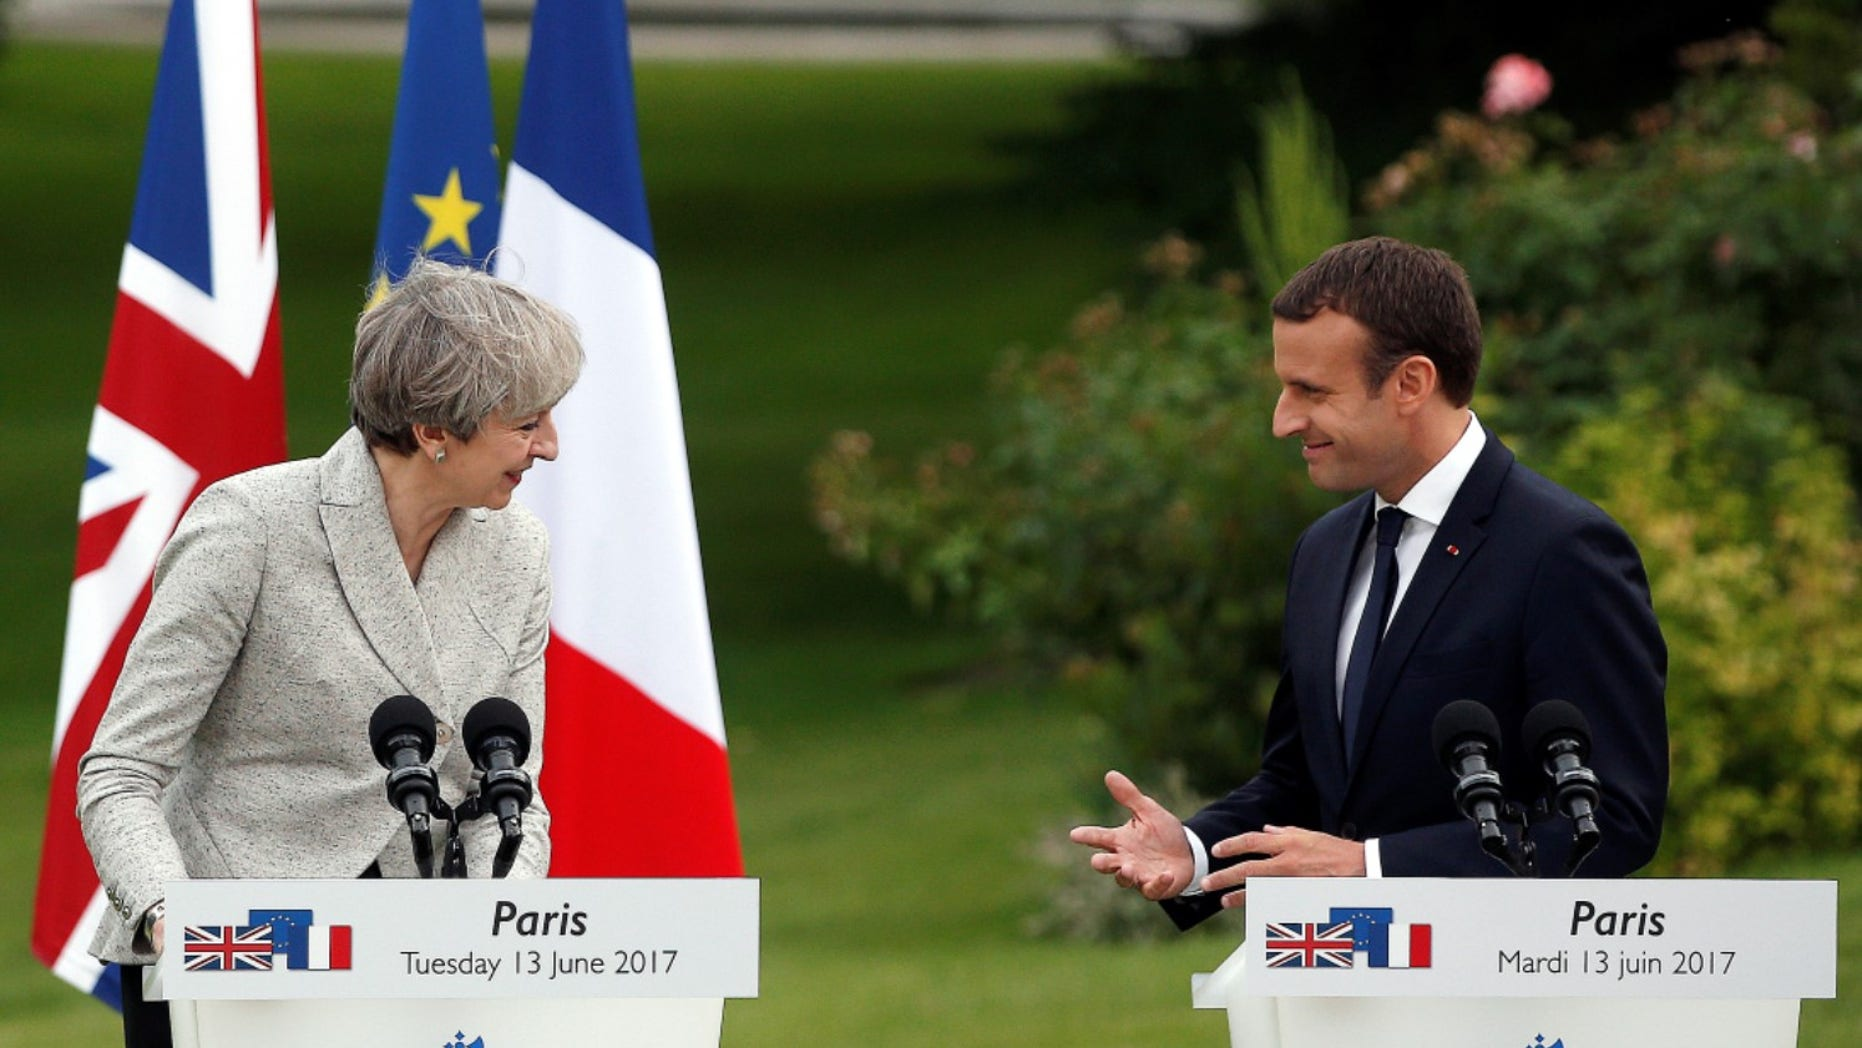 French President Emmanuel Macron, right, and Britain's Prime Minister Theresa May, spoke at a joint press conference, after a meeting, at the Elysee Palace, in Paris, Tuesday, June 13, 2017. (AP Photo/Thibault Camus)